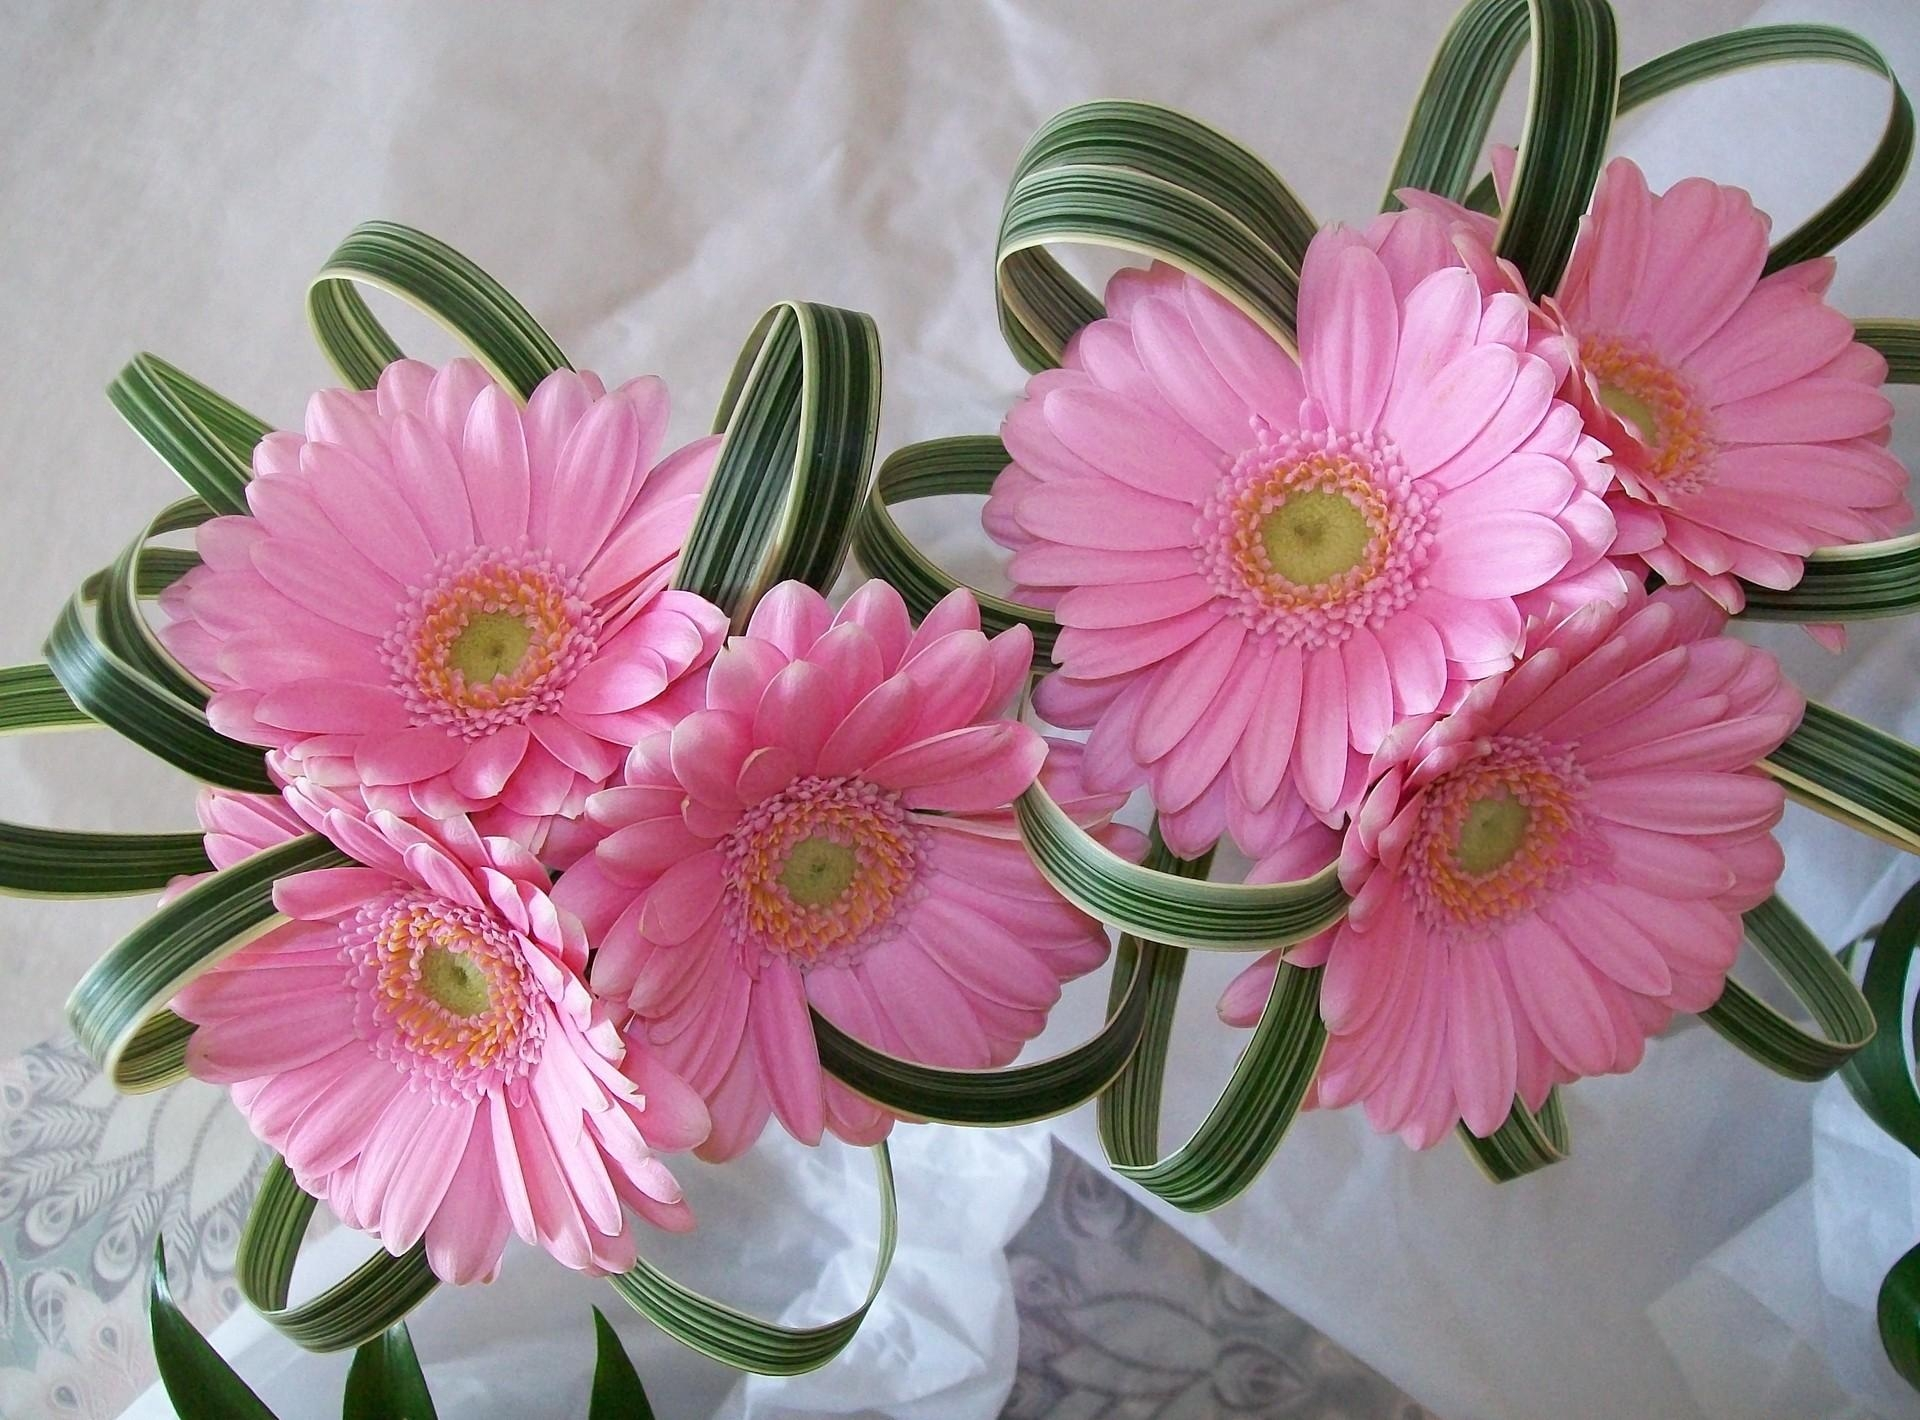 75865 download wallpaper Flowers, Gerberas, Registration, Typography, Composition screensavers and pictures for free